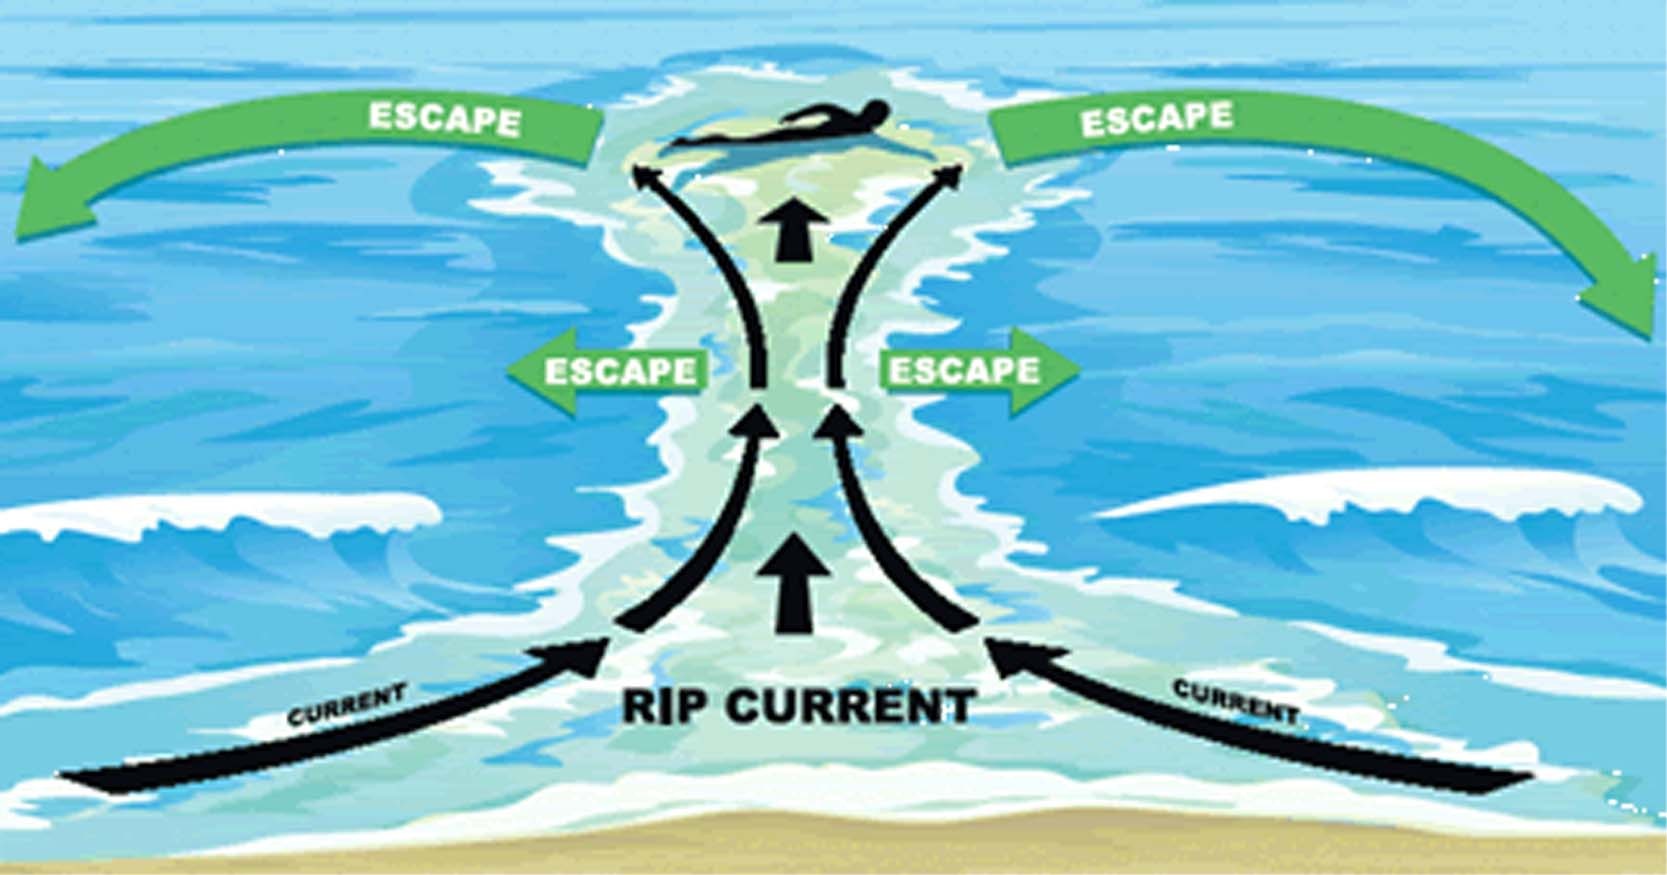 ripcurrent-safety2